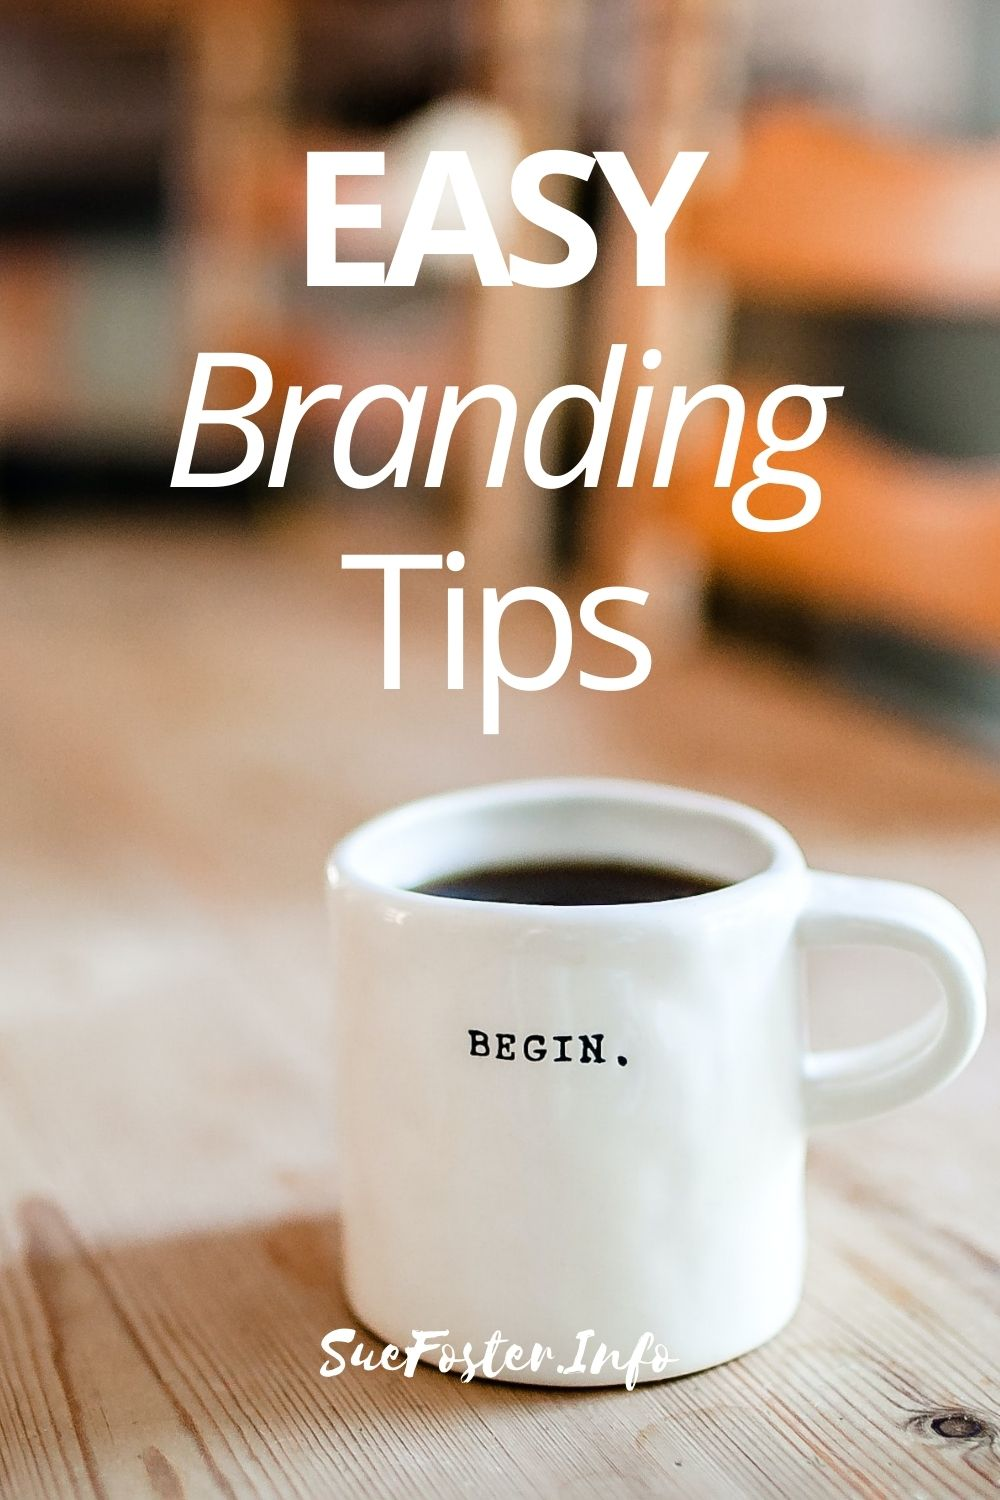 Easy branding tips for your business